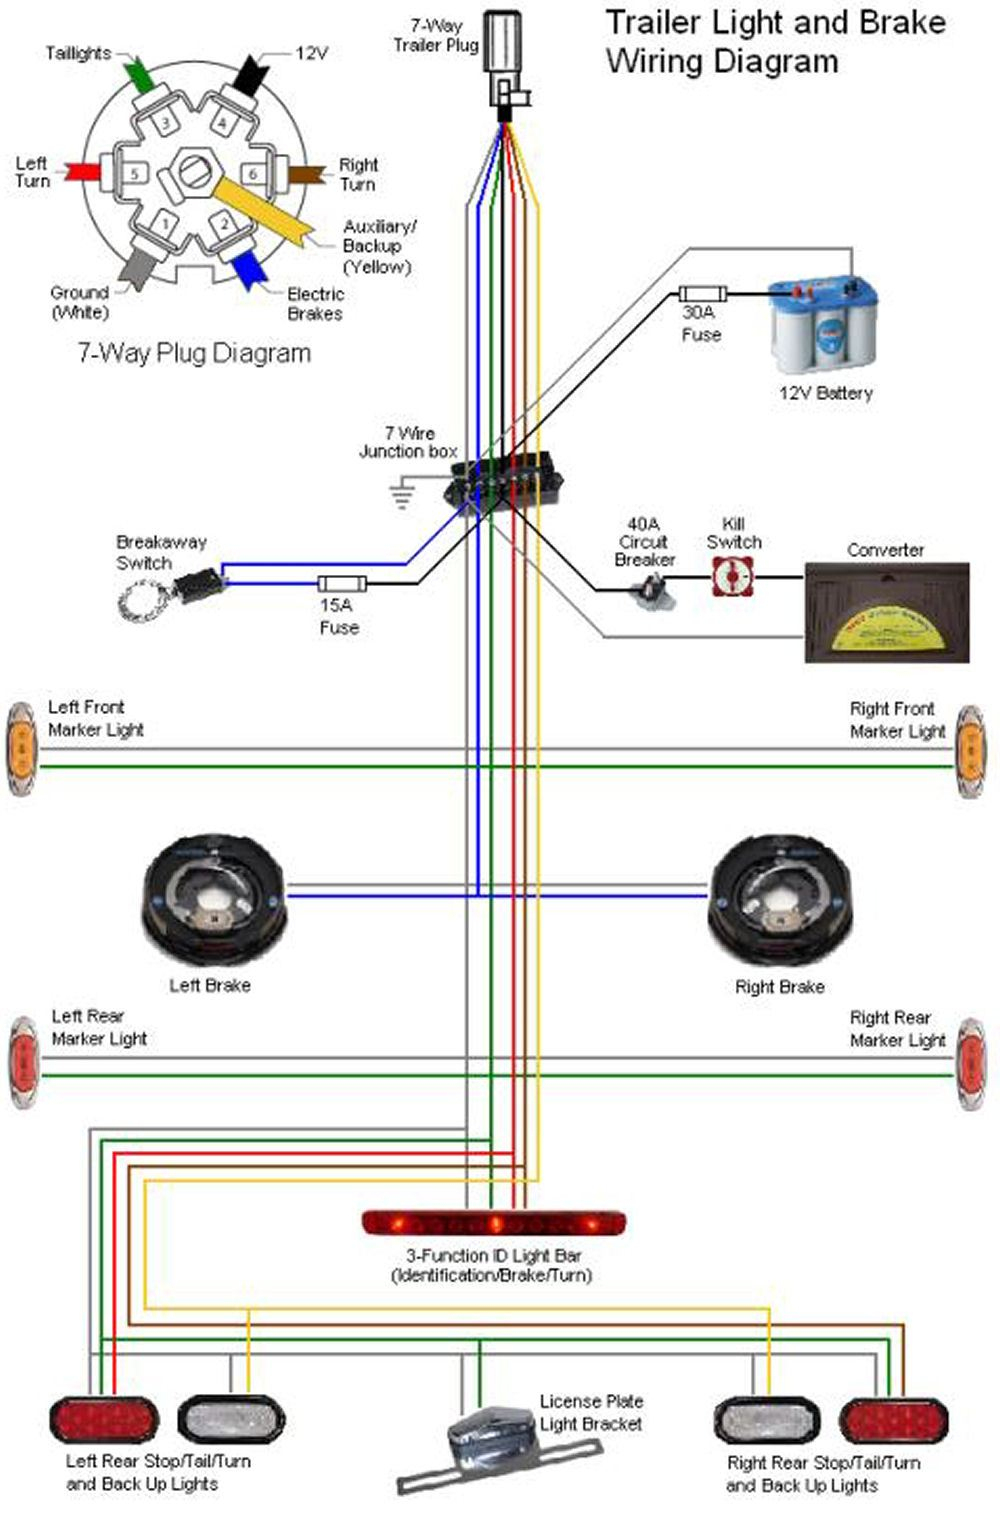 7 Wire Trailer Wiring Diagram With Brakes | Manual E-Books - Trailer Junction Box Wiring Diagram